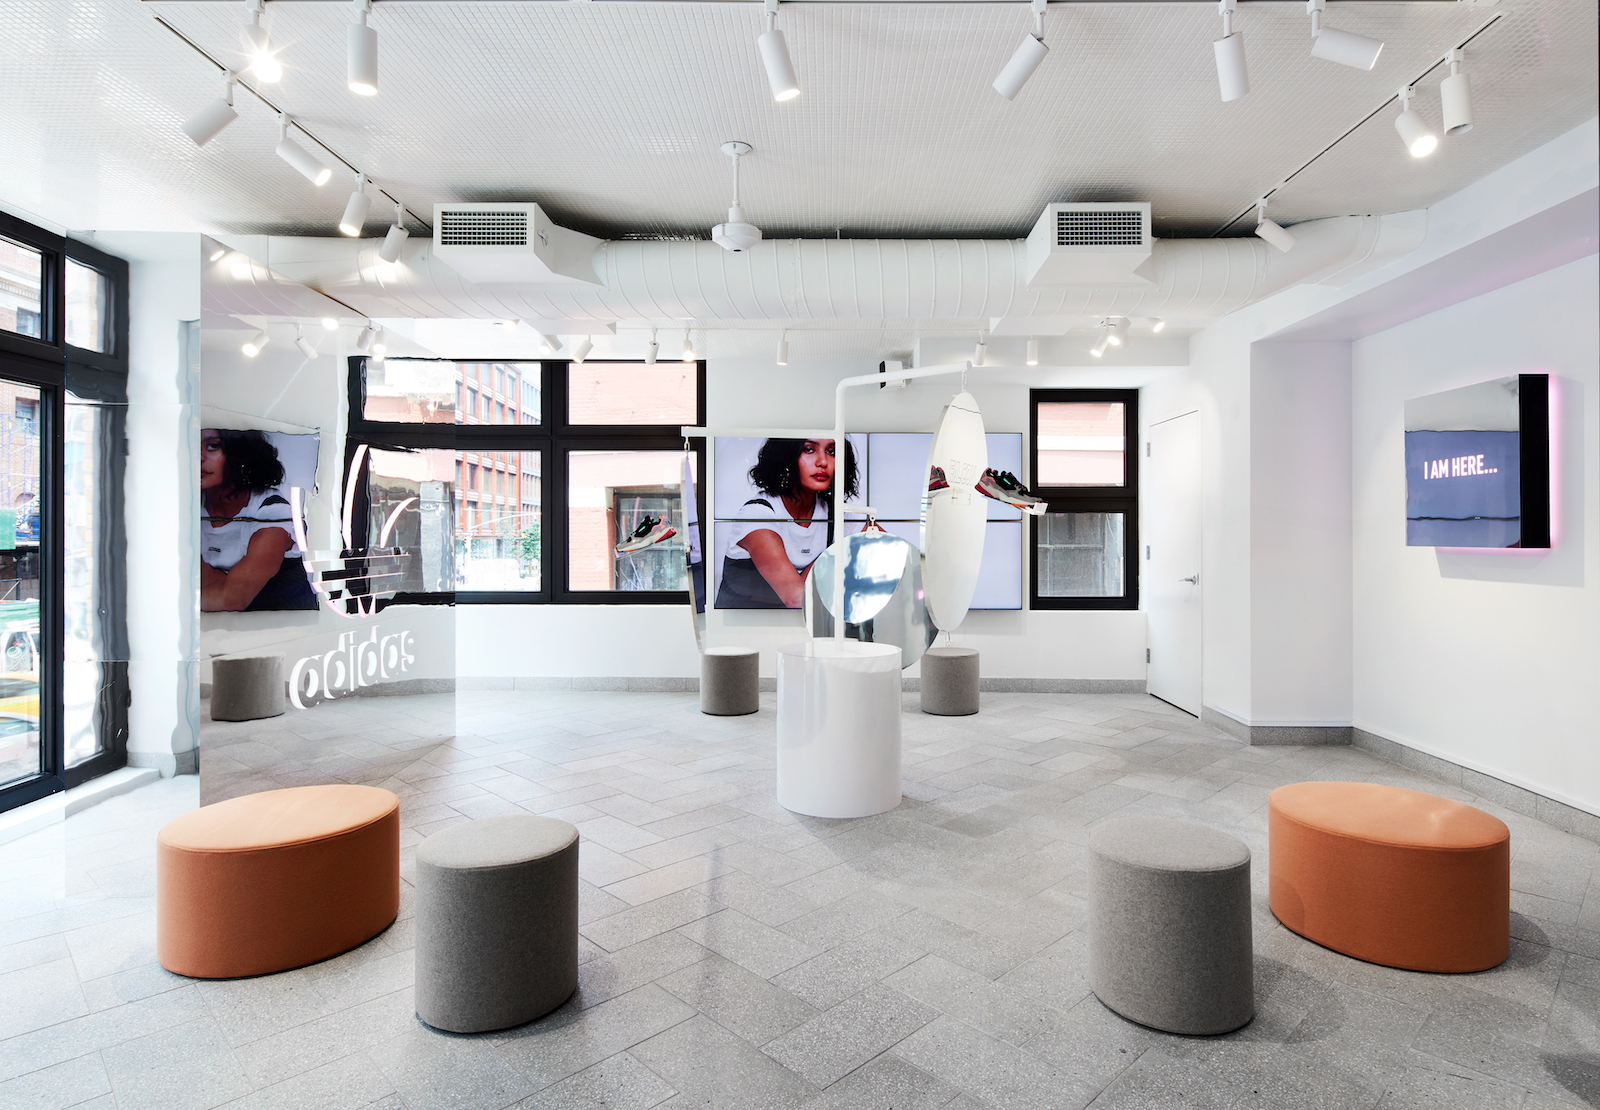 A clean, light retail space buildout with mirror elements displaying the shoe and adidas logo prominently.